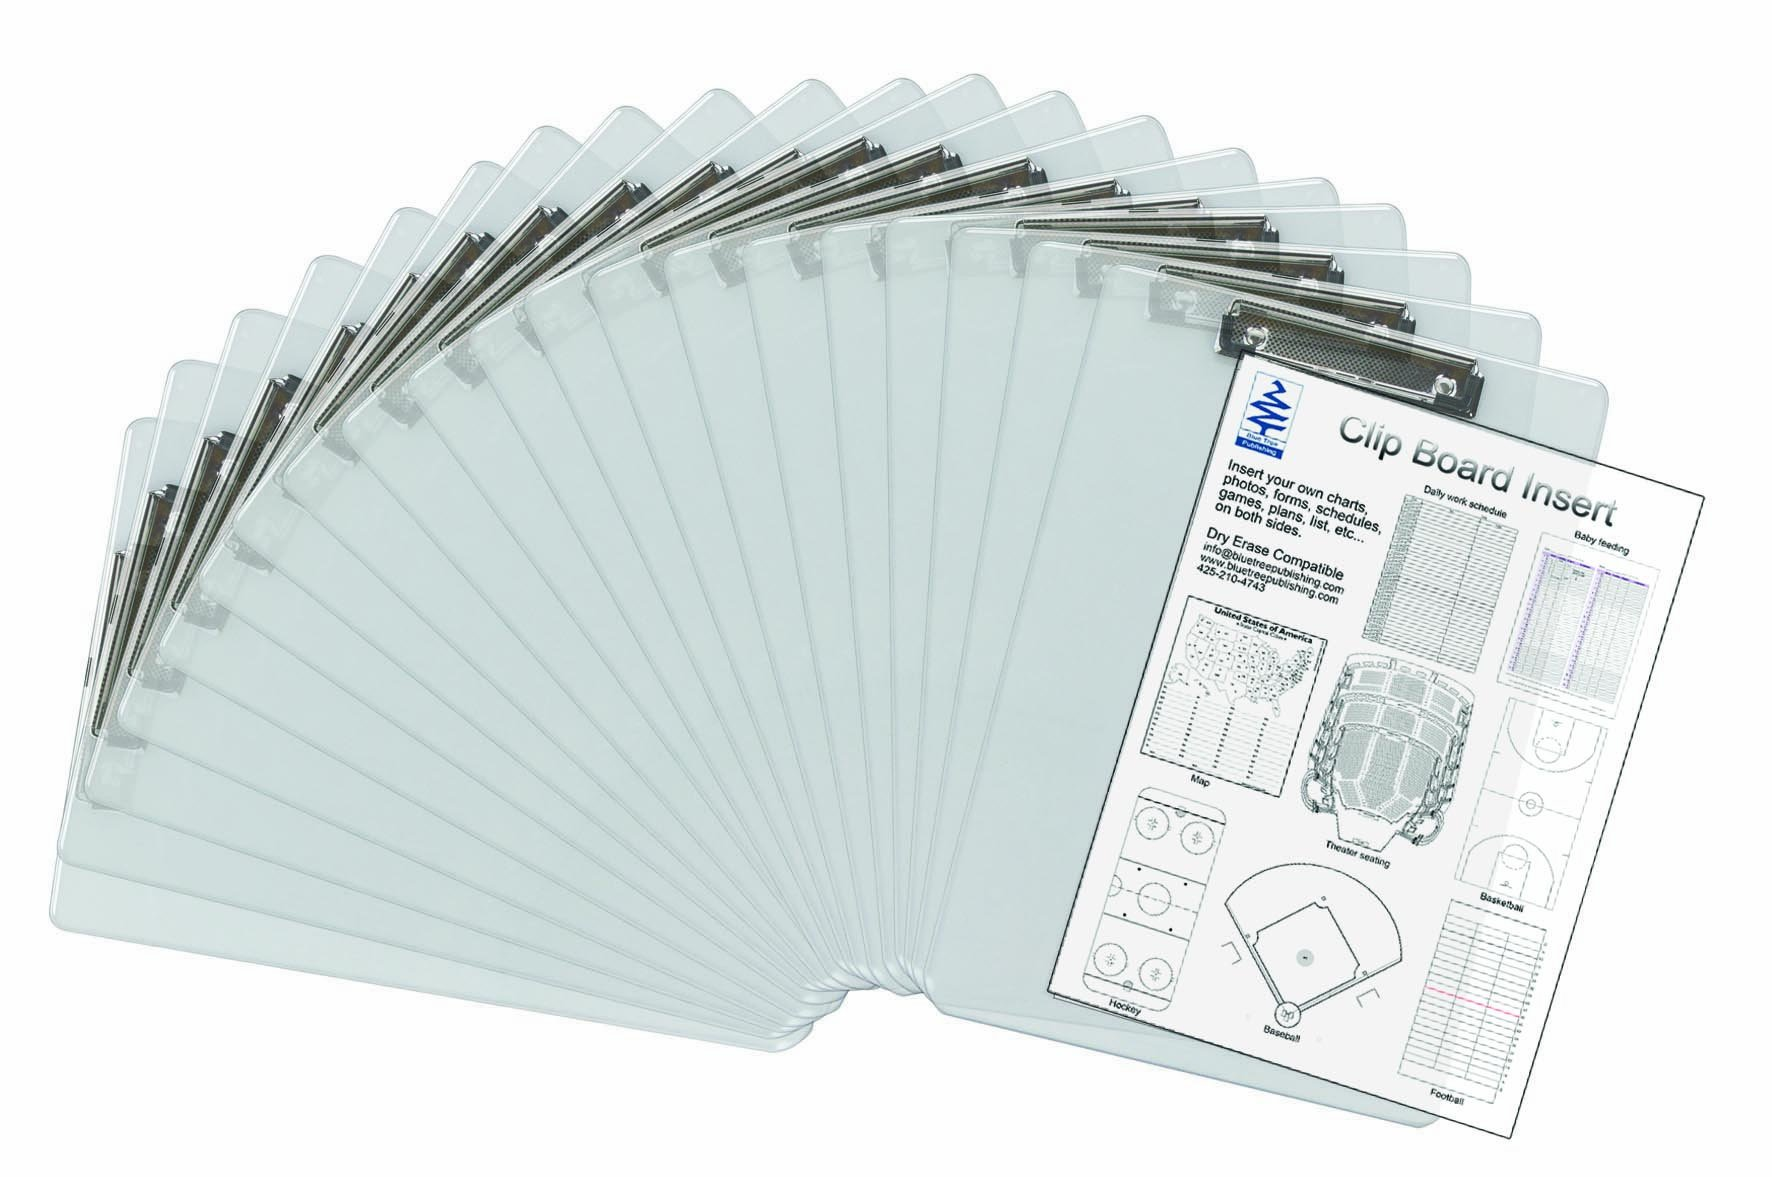 Insert Clipboard,See-thru 20 Pack, Transparent, Insert Documents You Need to See Quickly Between the Transparent Acrylic Sheets for Quick Reference. Both Sides Remain Visible. Dry Erase Compatible.